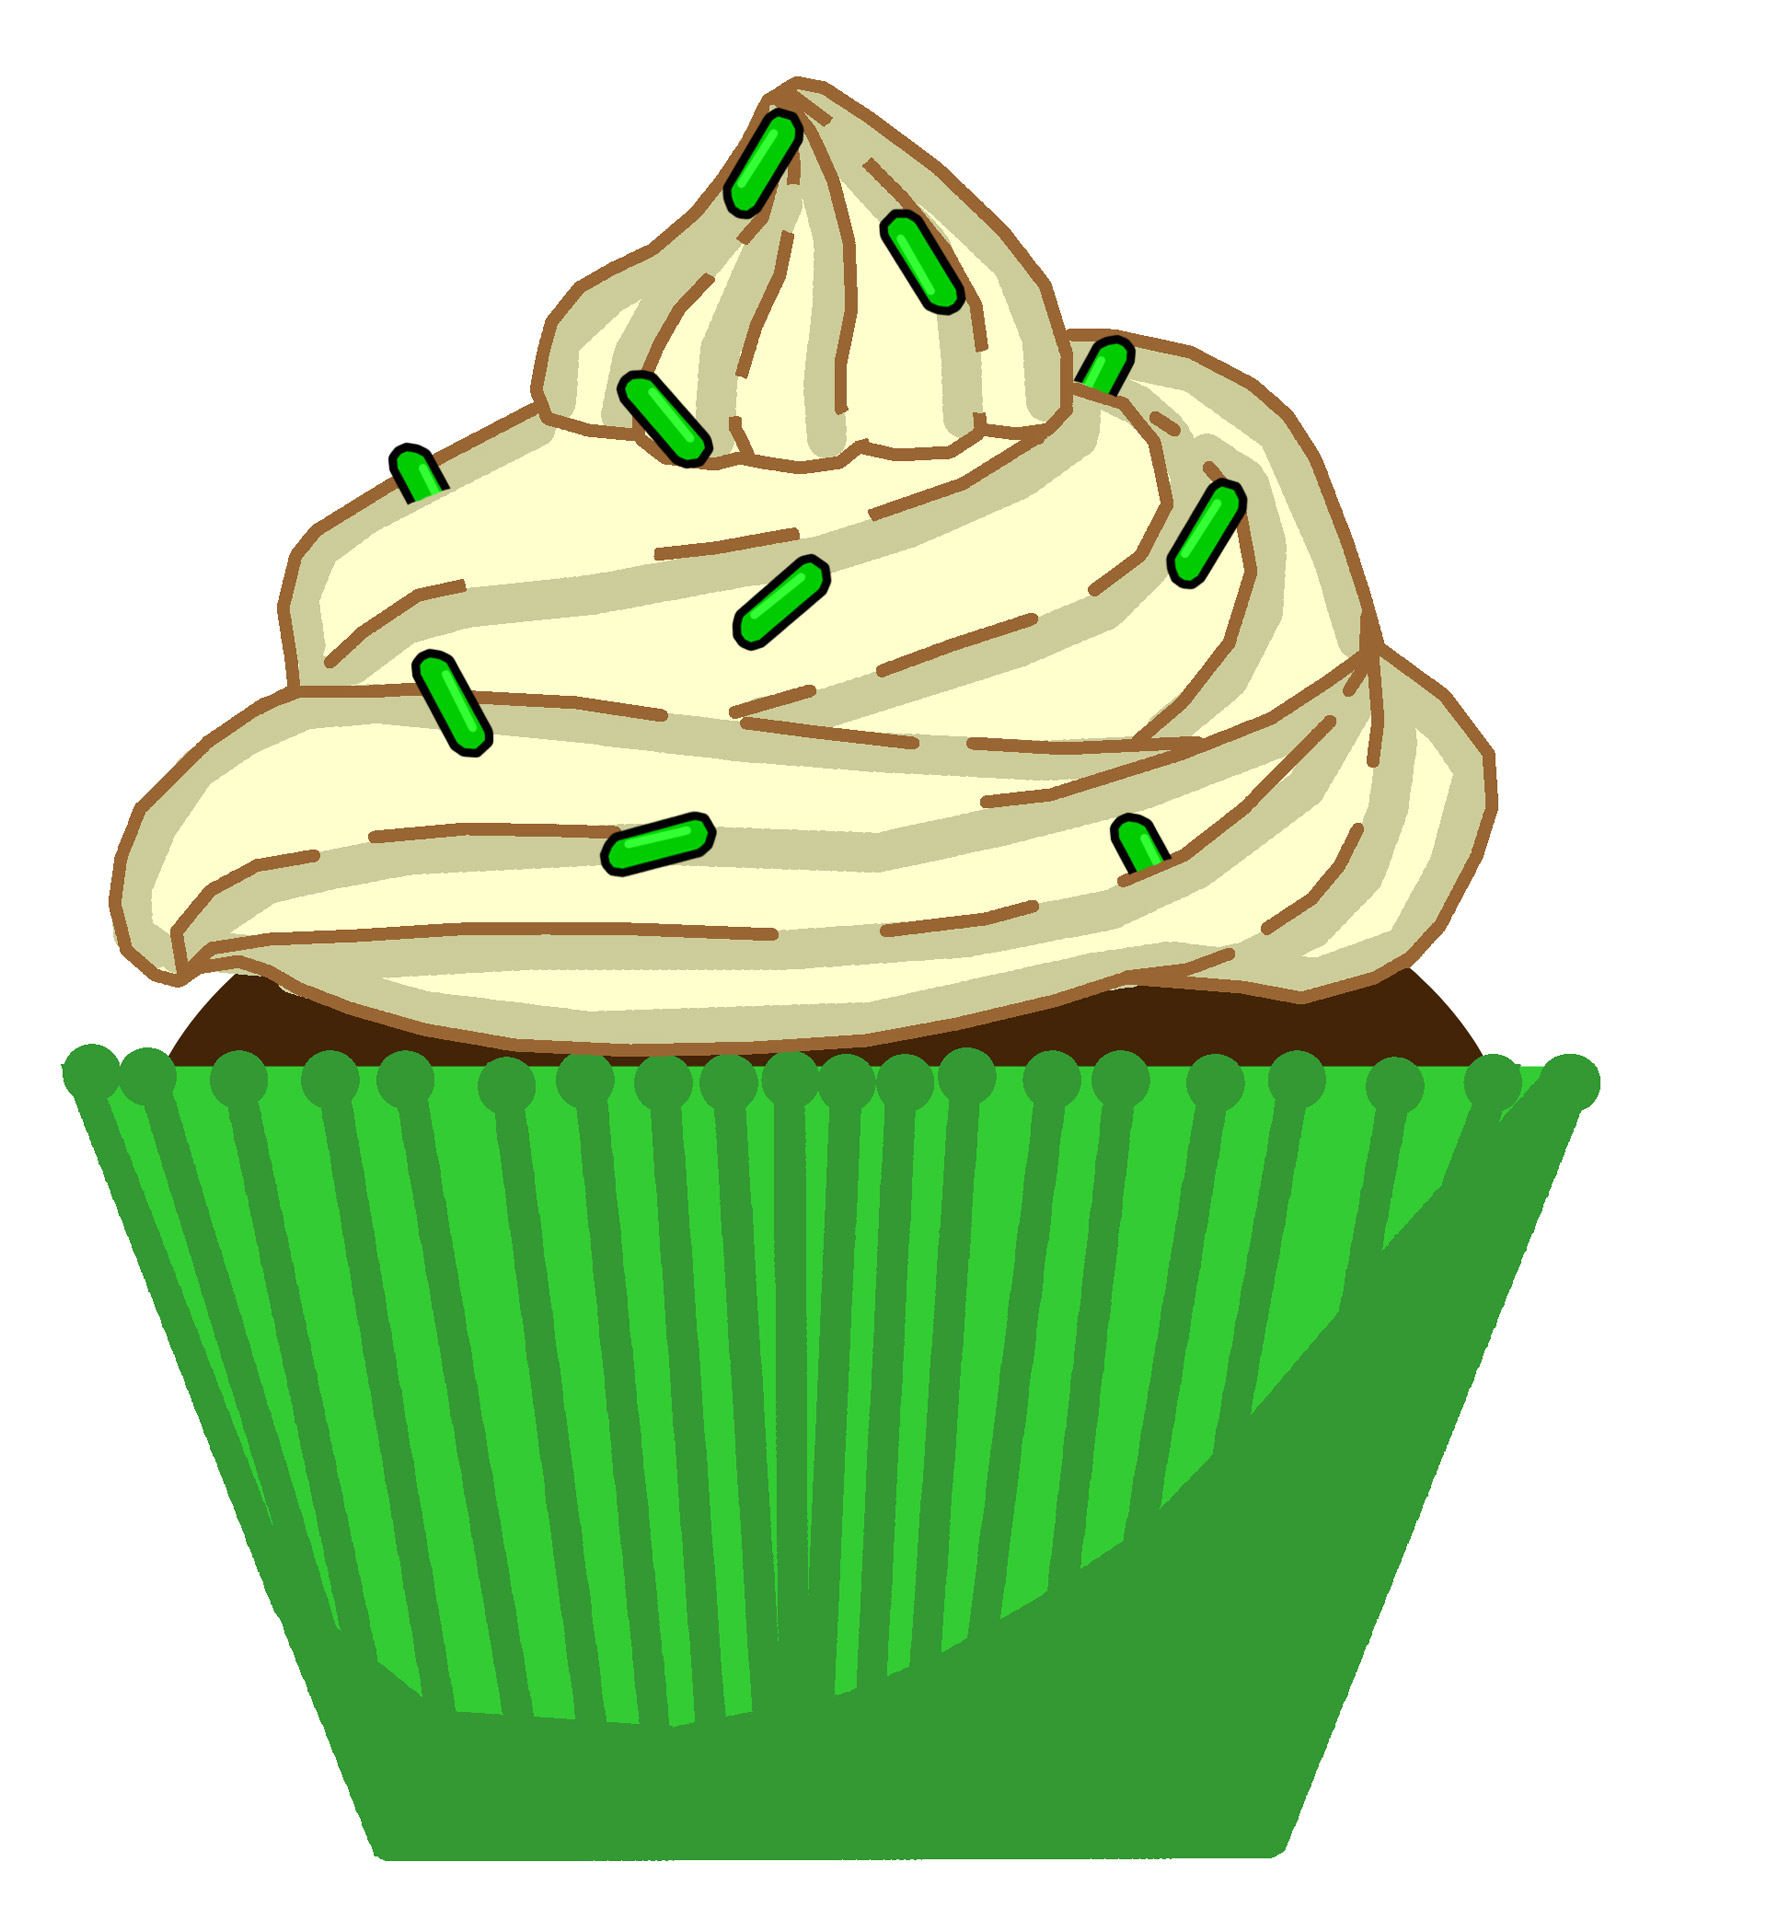 hight resolution of green mint cupcake